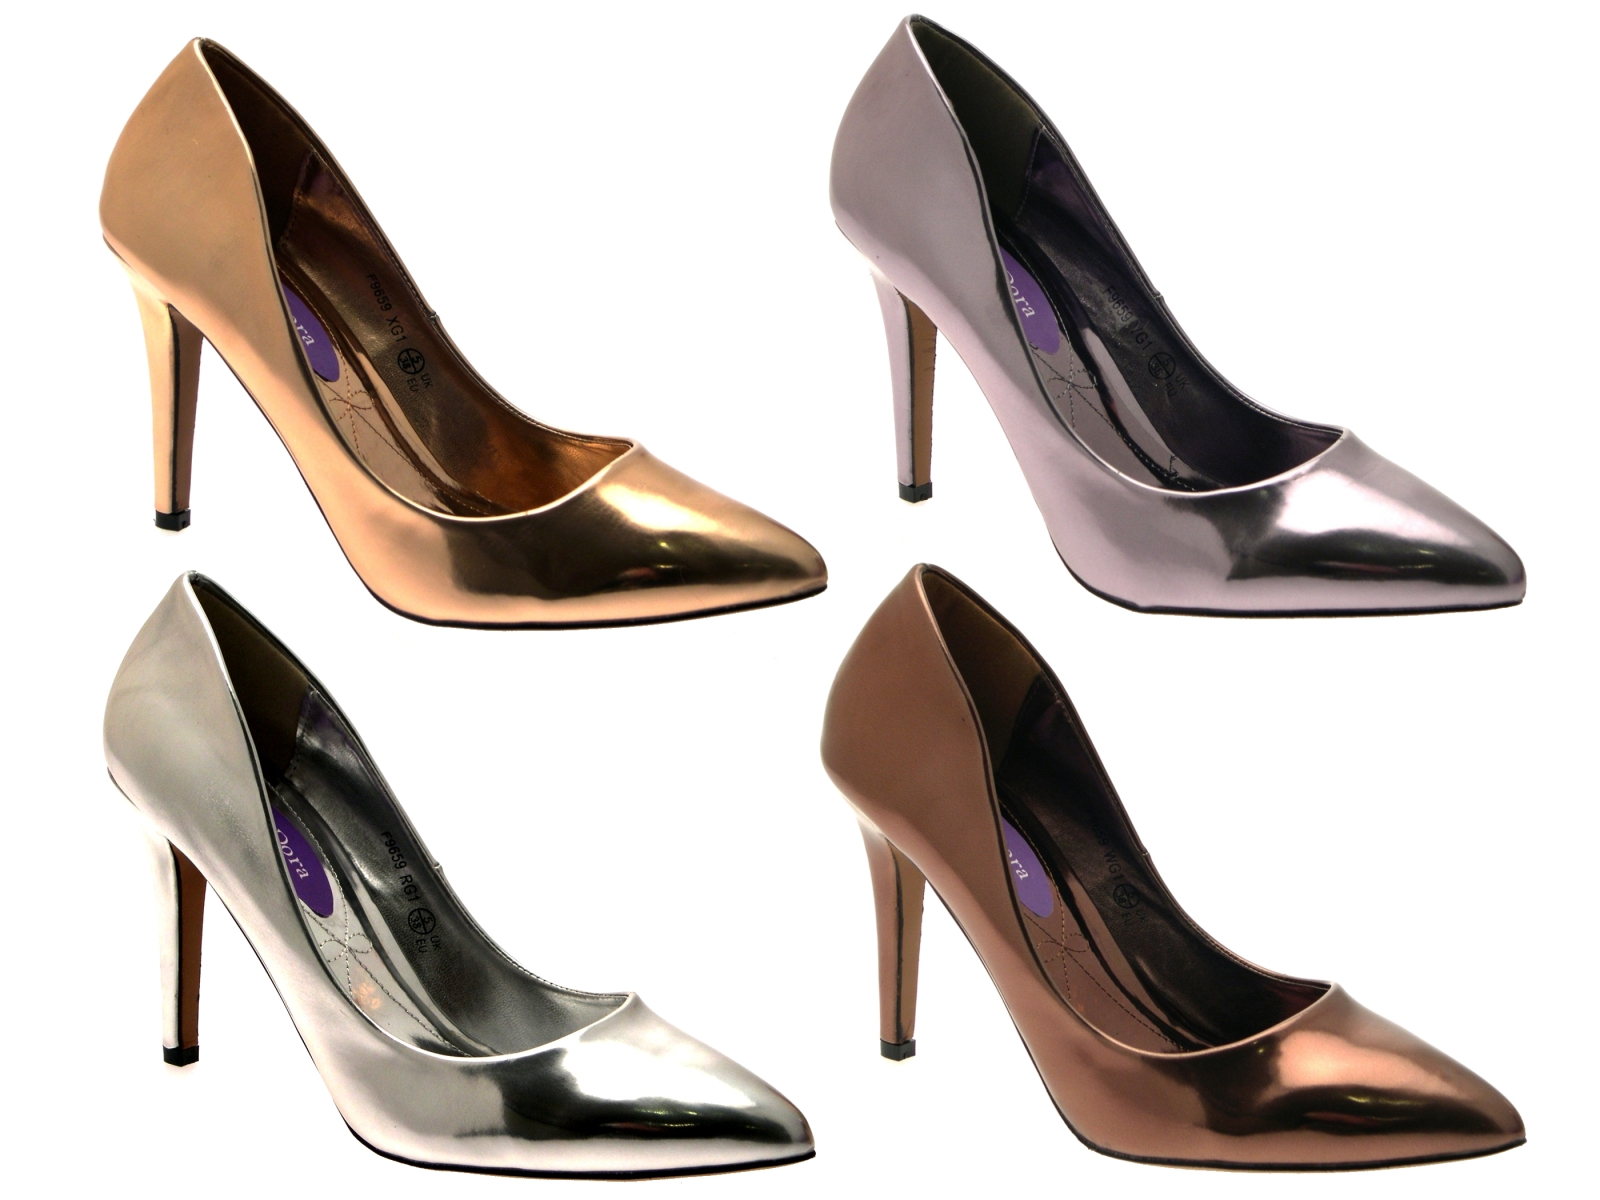 Womens-Metallic-Pointed-Toe-Court-Stiletto-High-Heels-Ladies-Work-Office-Shoes thumbnail 15